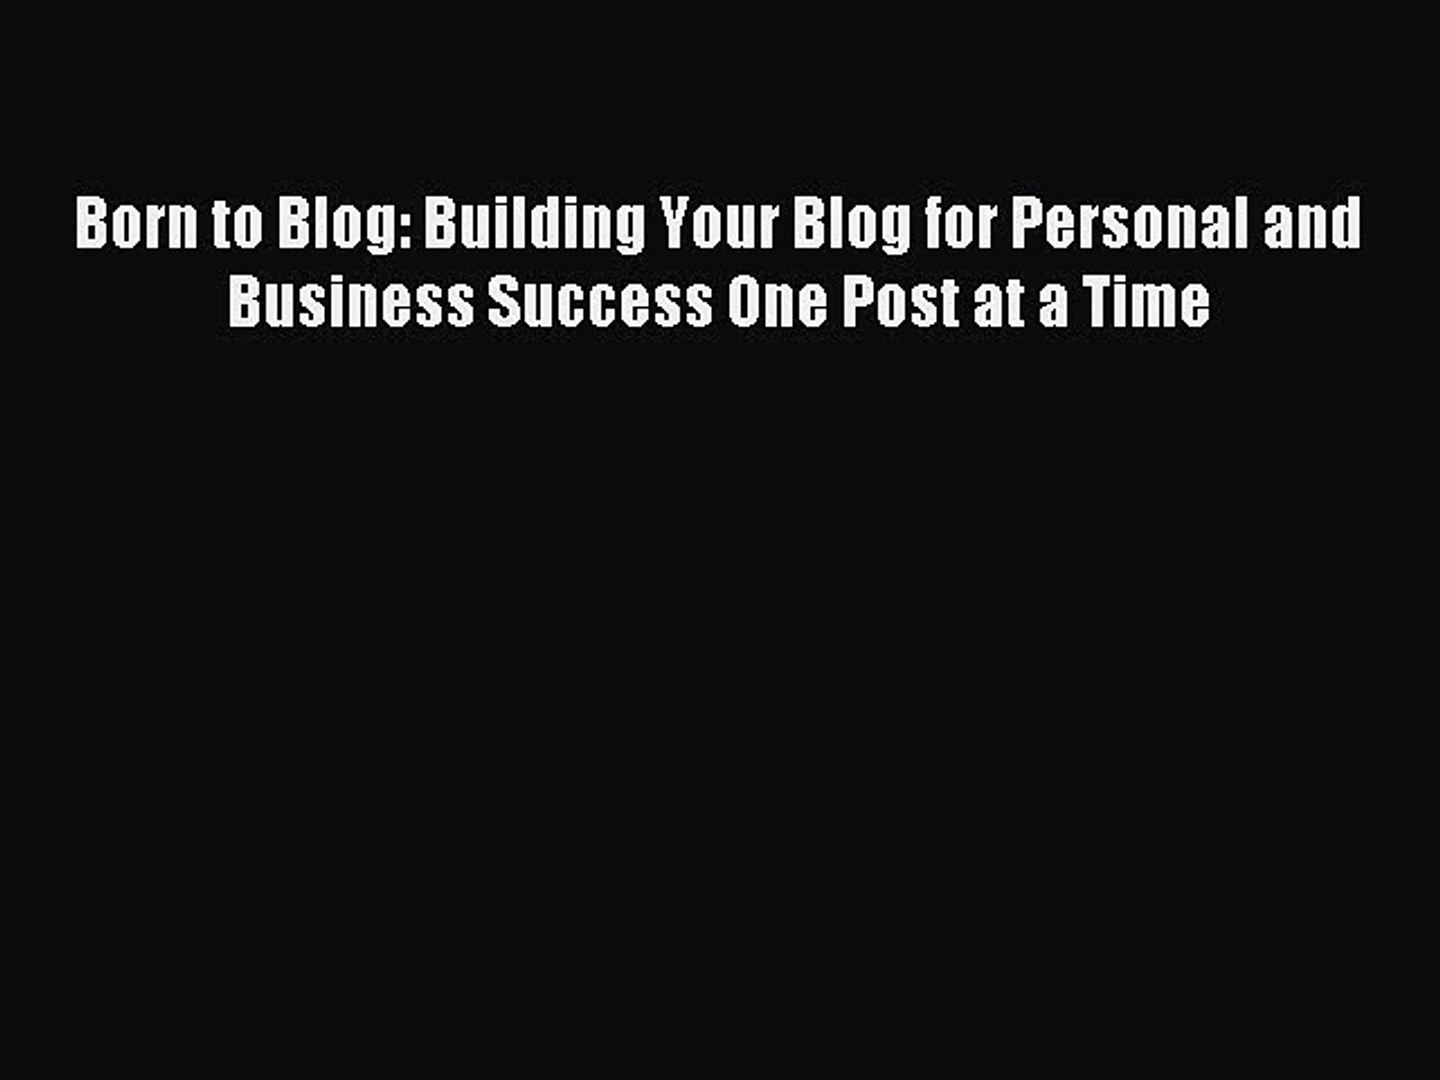 Read Born to Blog: Building Your Blog for Personal and Business Success One Post at a Time